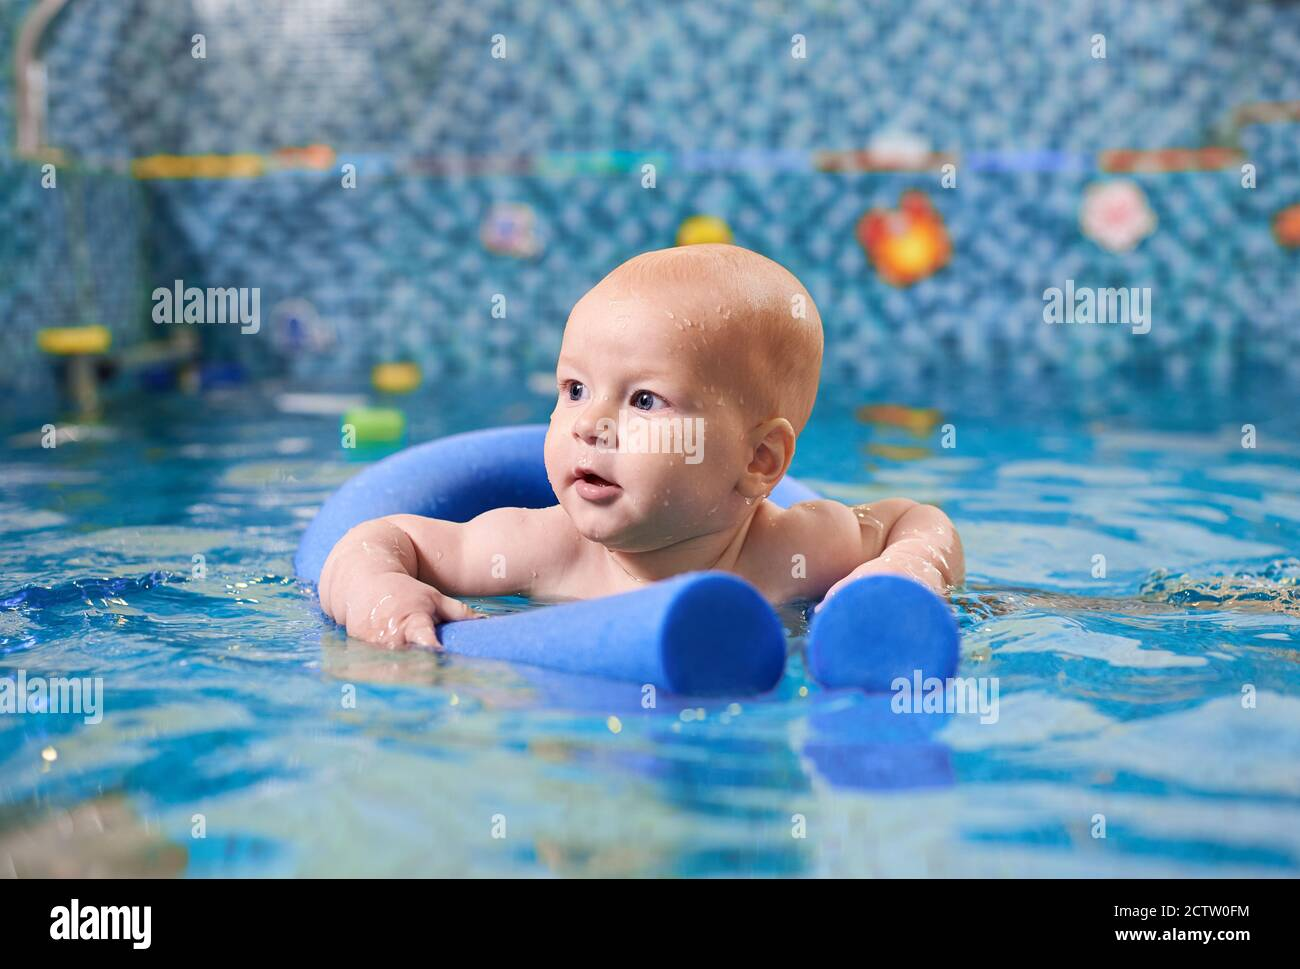 Cute child holding blue pool-noodle and gliding in crystal pool water while learning to swim. Adorable baby with water drops on face swimming in pool. Concept of childhood and safe swimming lessons. Stock Photo